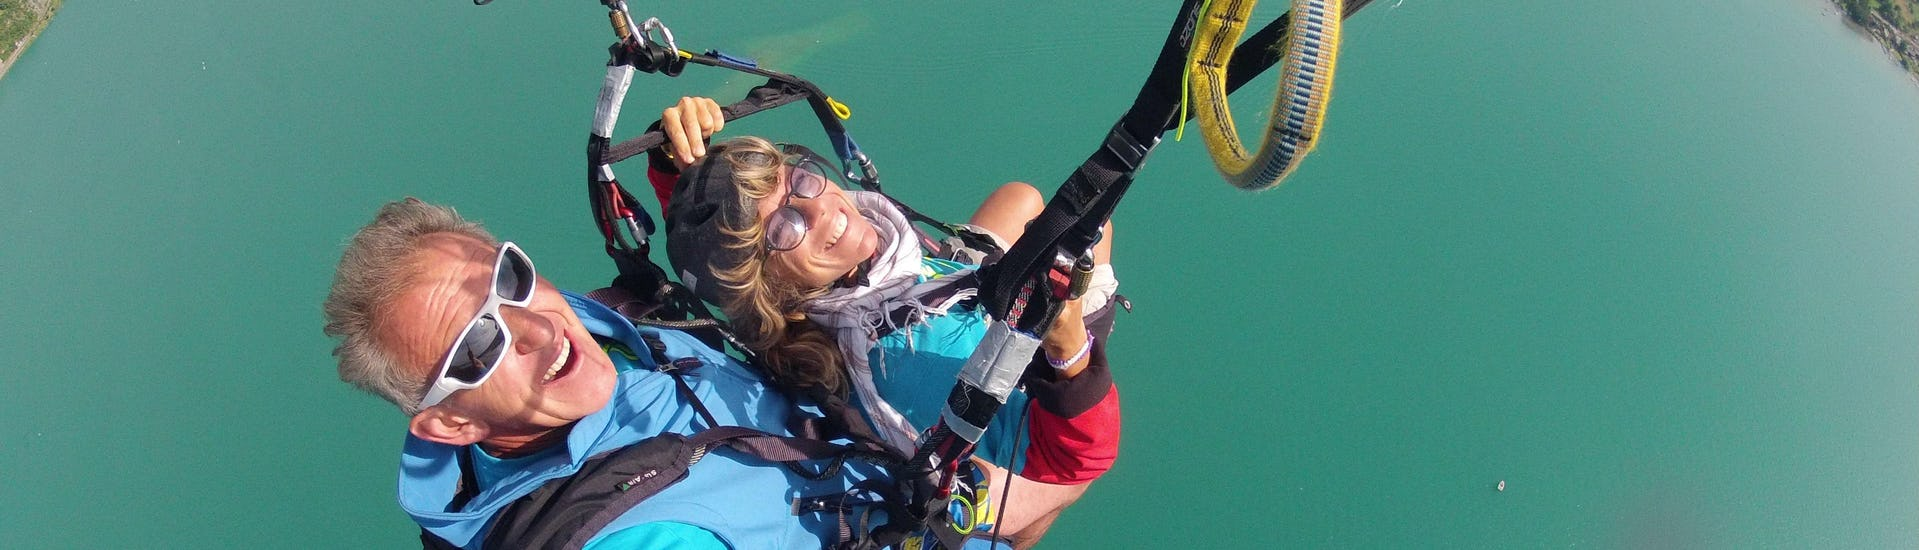 A woman is enjoying her Tandem Paragliding at Lake Annecy - Optimum activity with FBI Parapente.